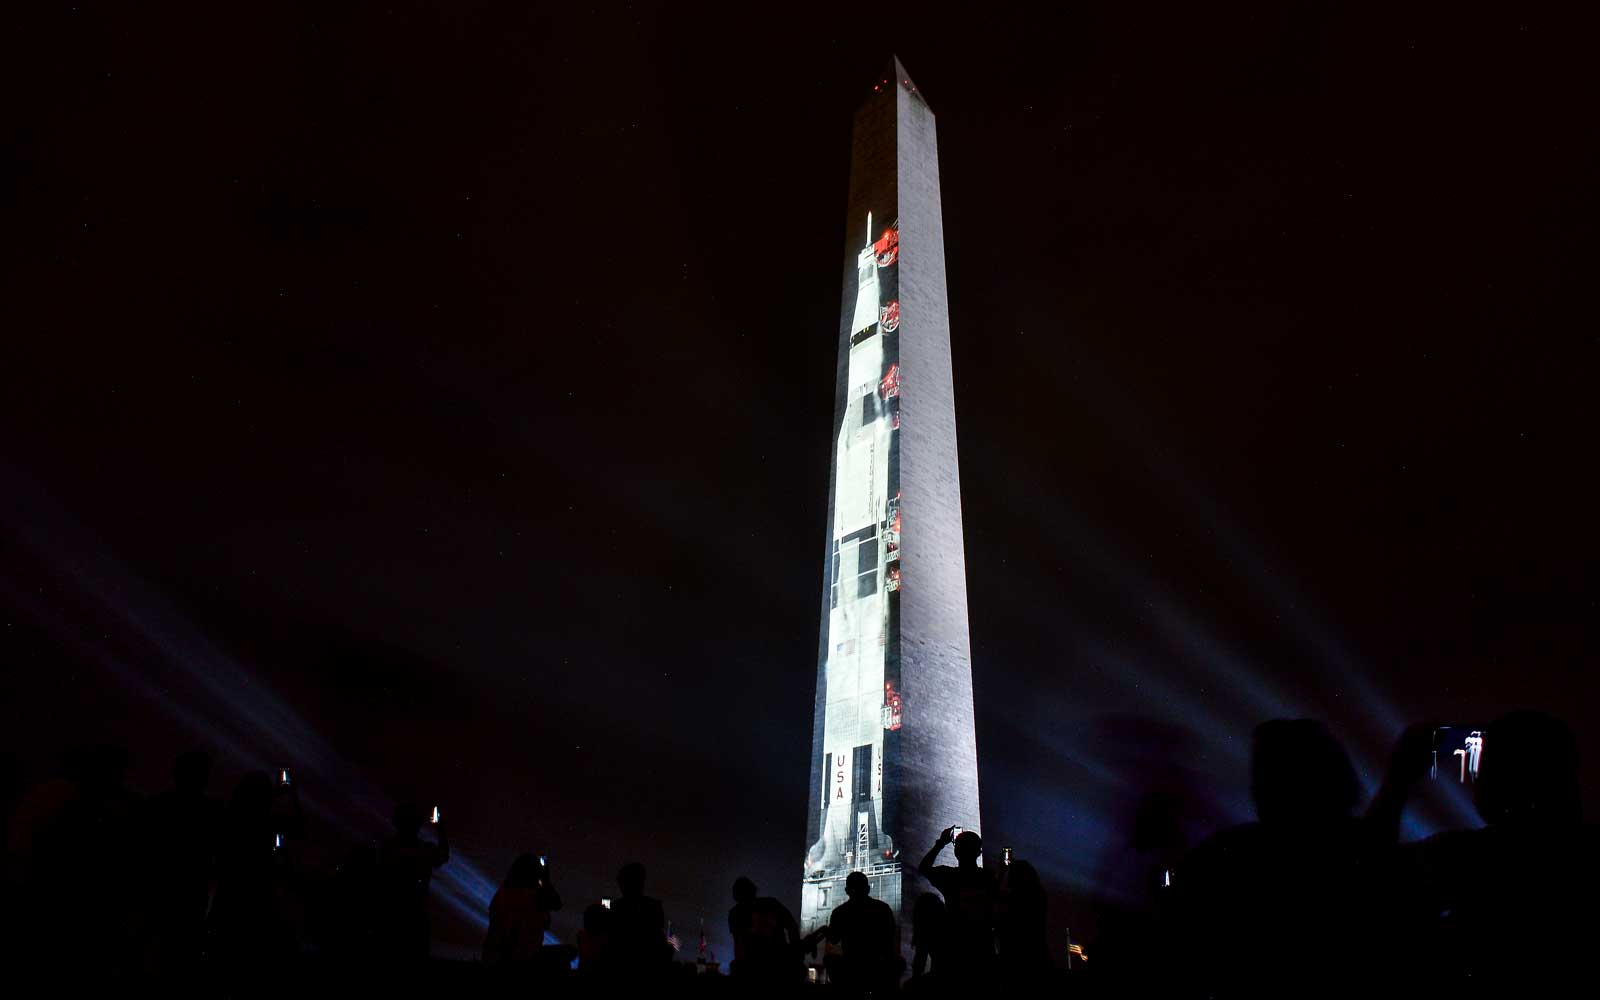 An image of a Saturn V, the rocket that sent Apollo 11 into orbit on July 16, 1969, is projected on the Washington monument in Washington, DC on July 16, 2019, in honor of the 50th anniversary of Apollo 11 and when man walked on the moon.